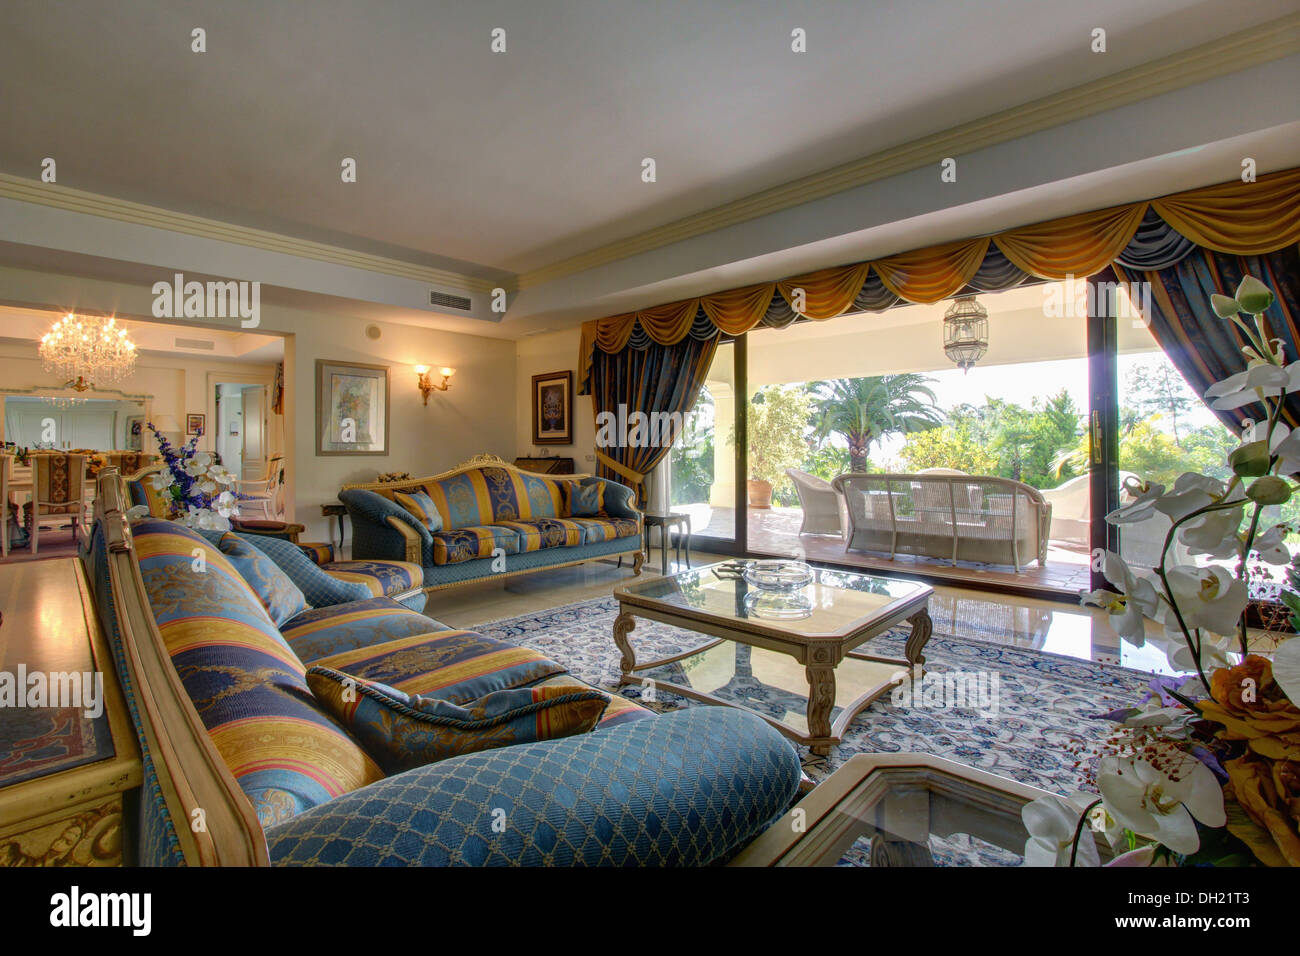 Yellow+blue Patterned Sofa And Matching Drapes On Glass Doors In Spanish  Living Room With